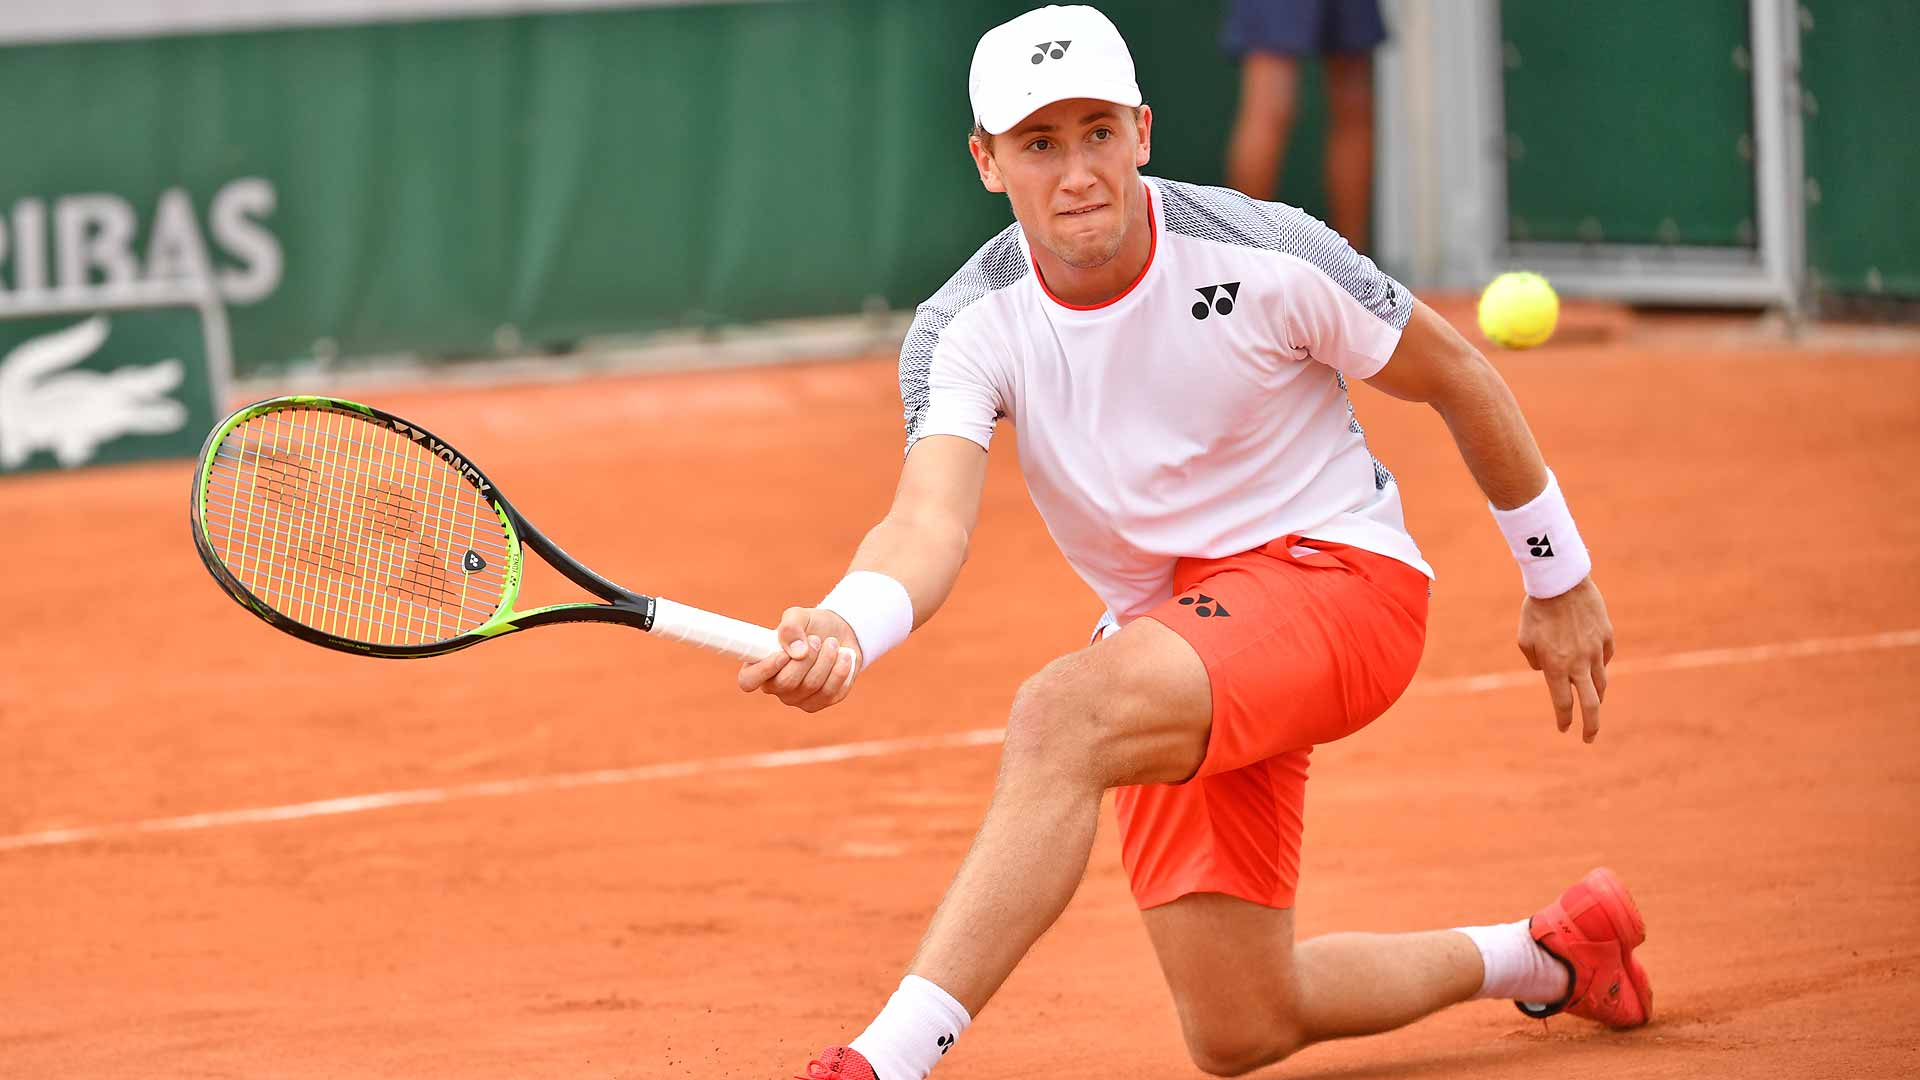 <a href='https://www.atptour.com/en/players/casper-ruud/rh16/overview'>Casper Ruud</a> slices a forehand at <a href='https://www.atptour.com/en/tournaments/roland-garros/520/overview'>Roland Garros</a>